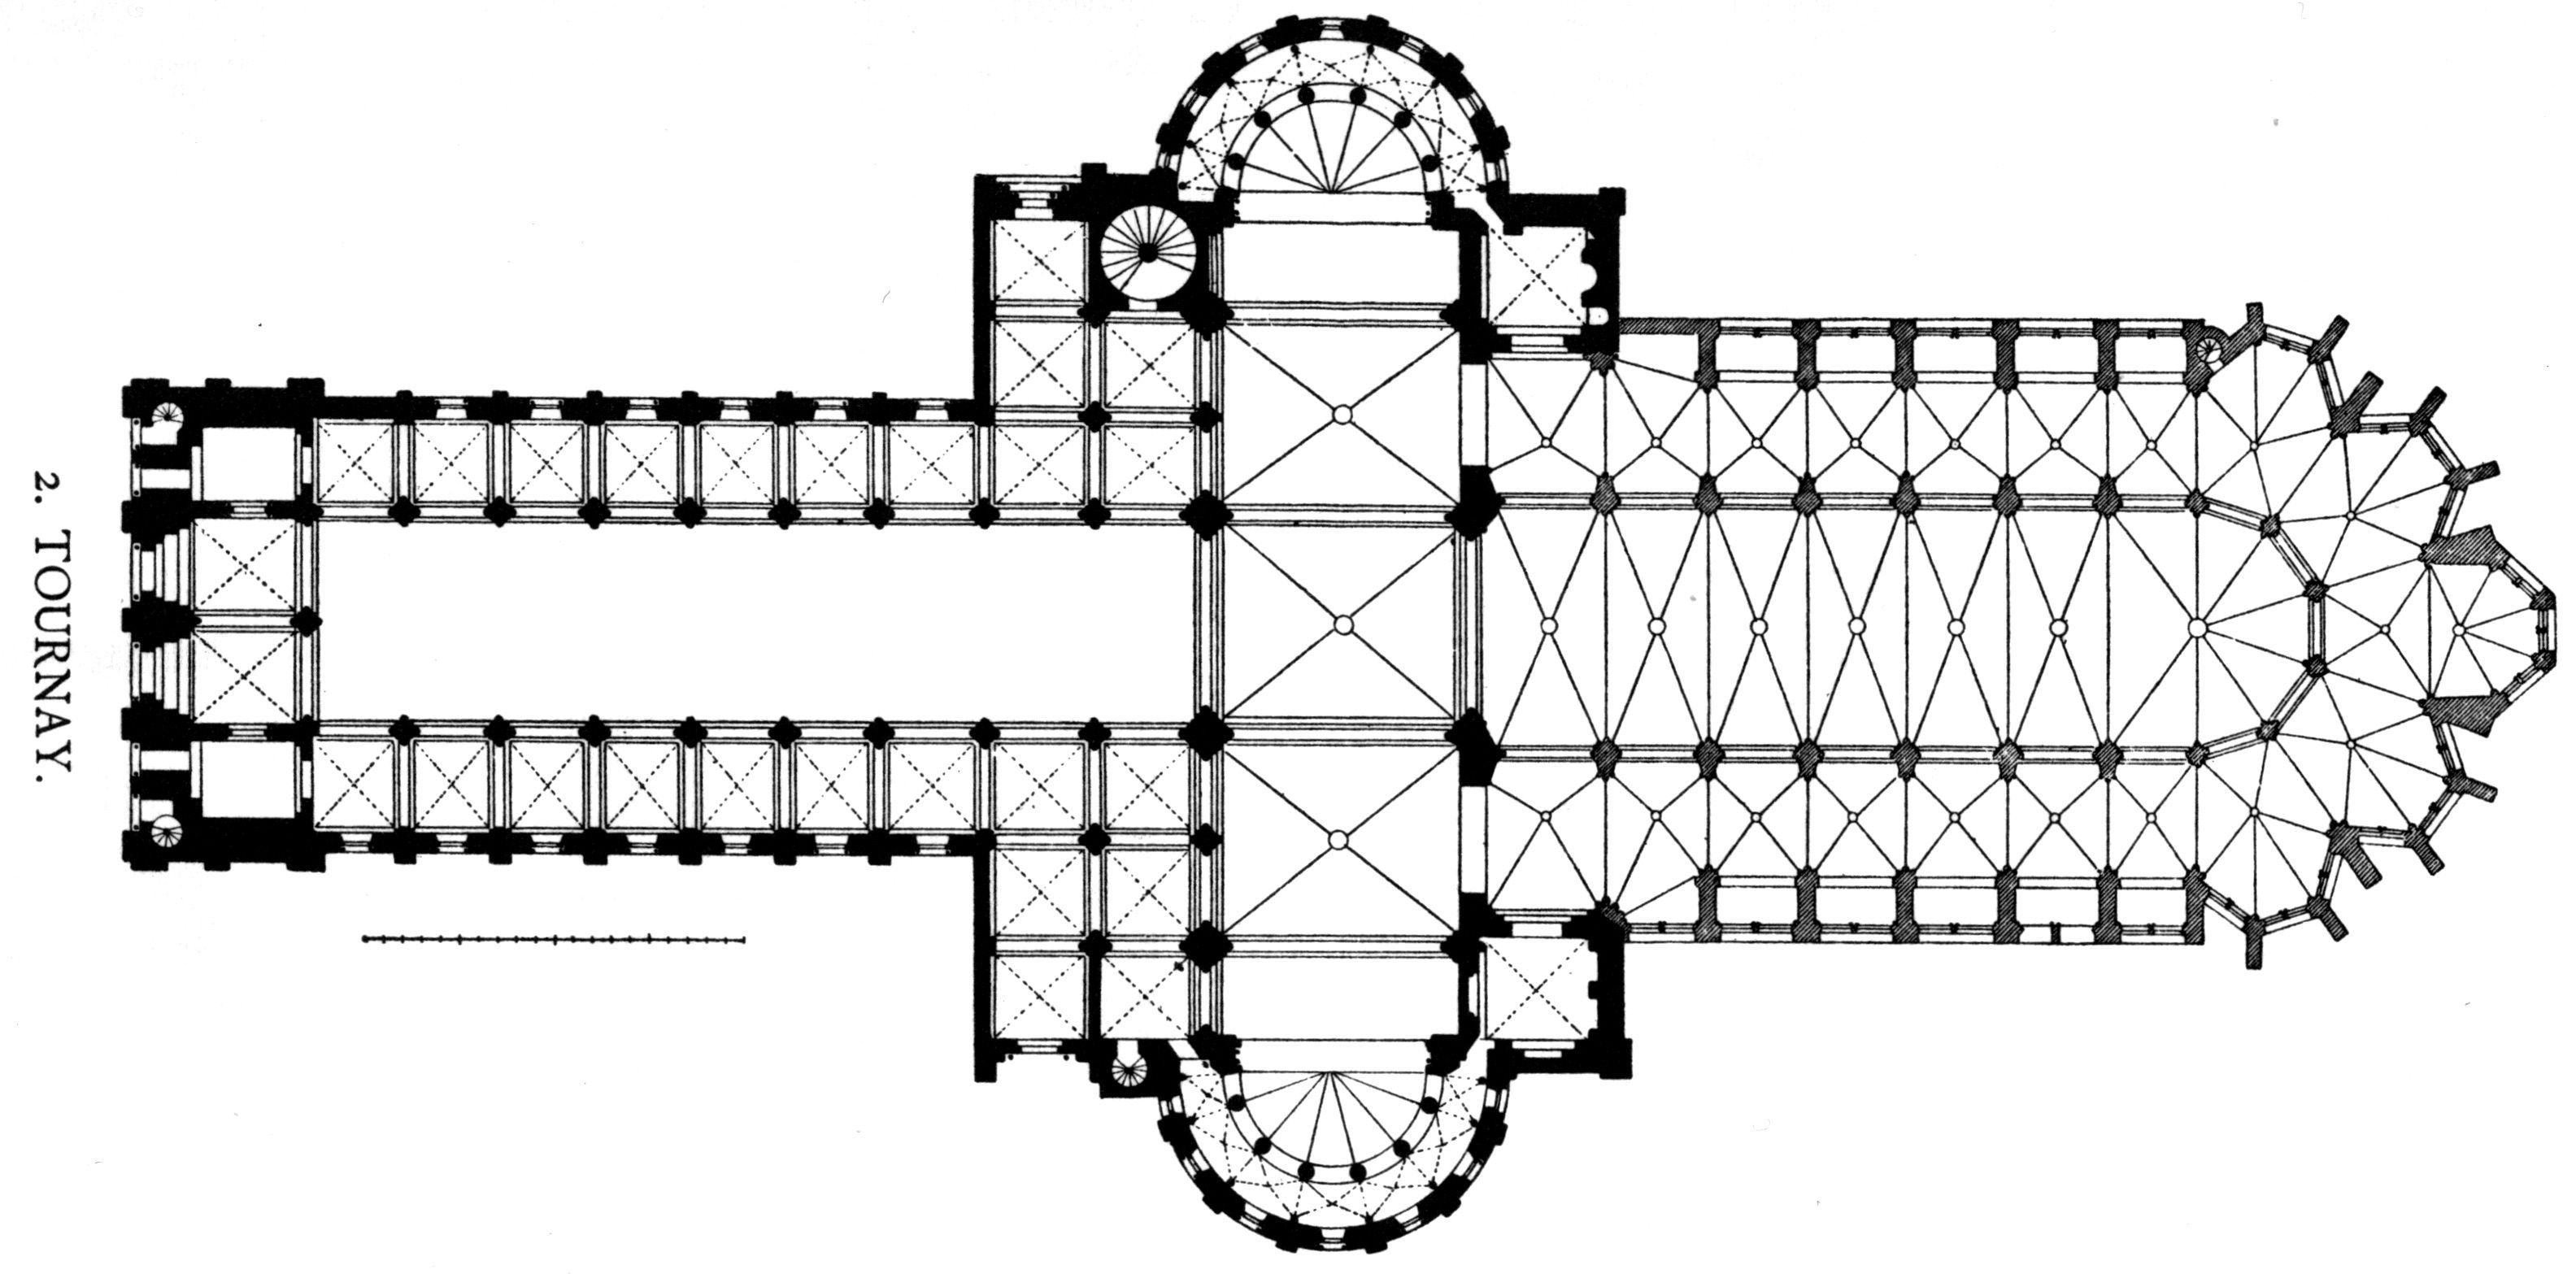 Canterbury Cathedral Floor Plan File Dehio 83 Tournai Floor Plan Ver Jpg Wikimedia Commons